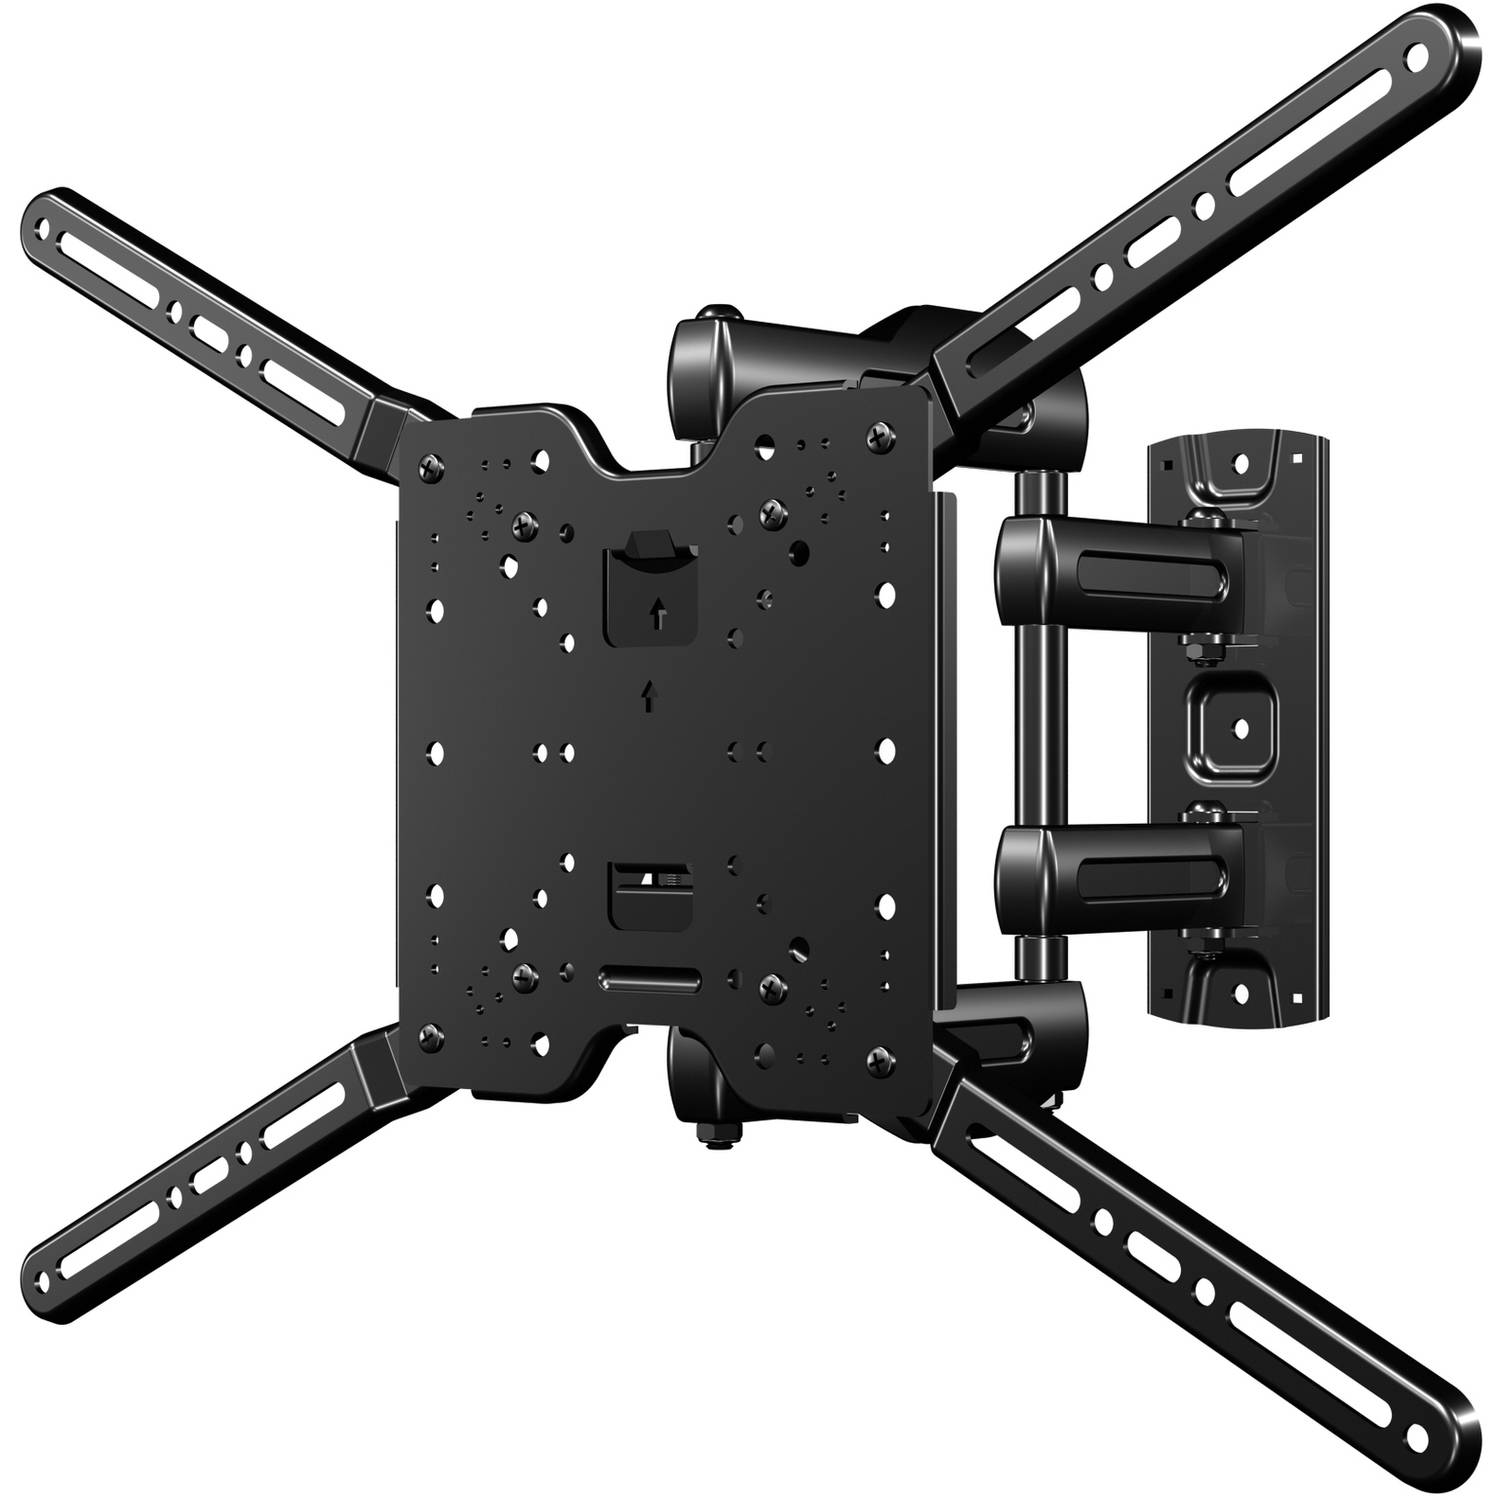 Sanus Vuepoint Flf215kit Full Motion Wall Mount Kit For 37